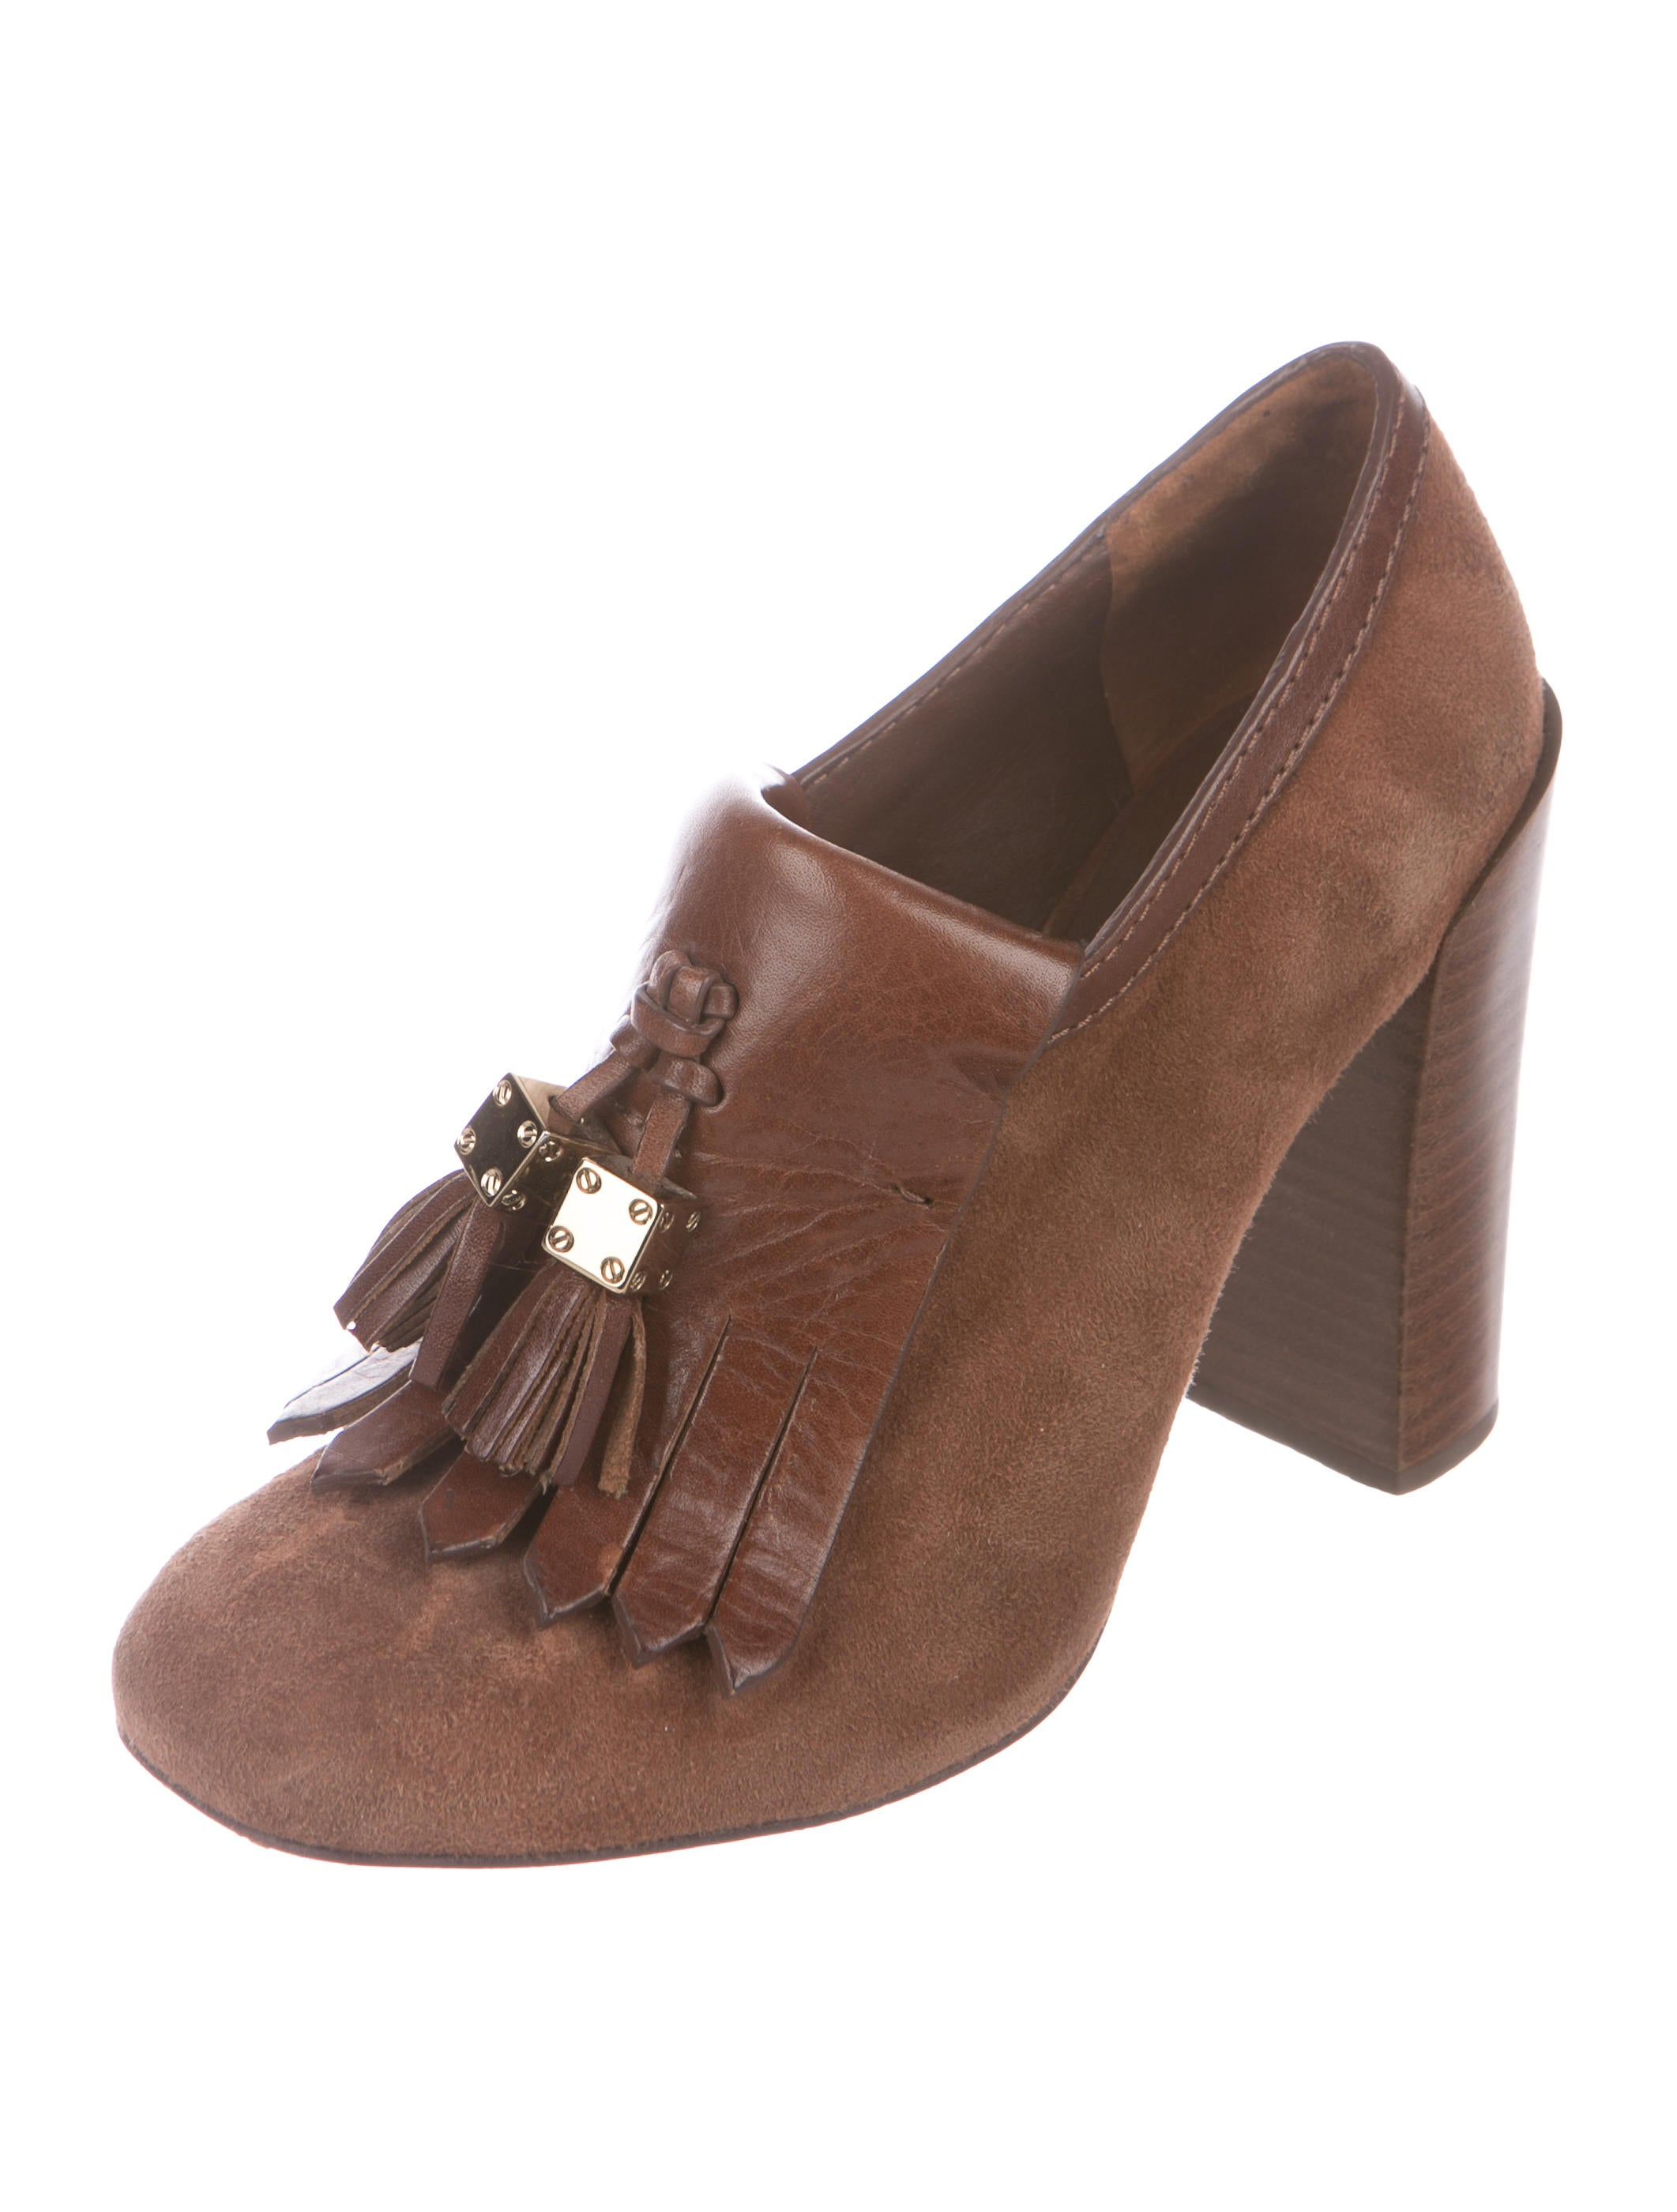 Tory Burch Square-Toe Kiltie Booties shipping discount authentic 100% guaranteed cheap online clearance professional EkCtg8ON7